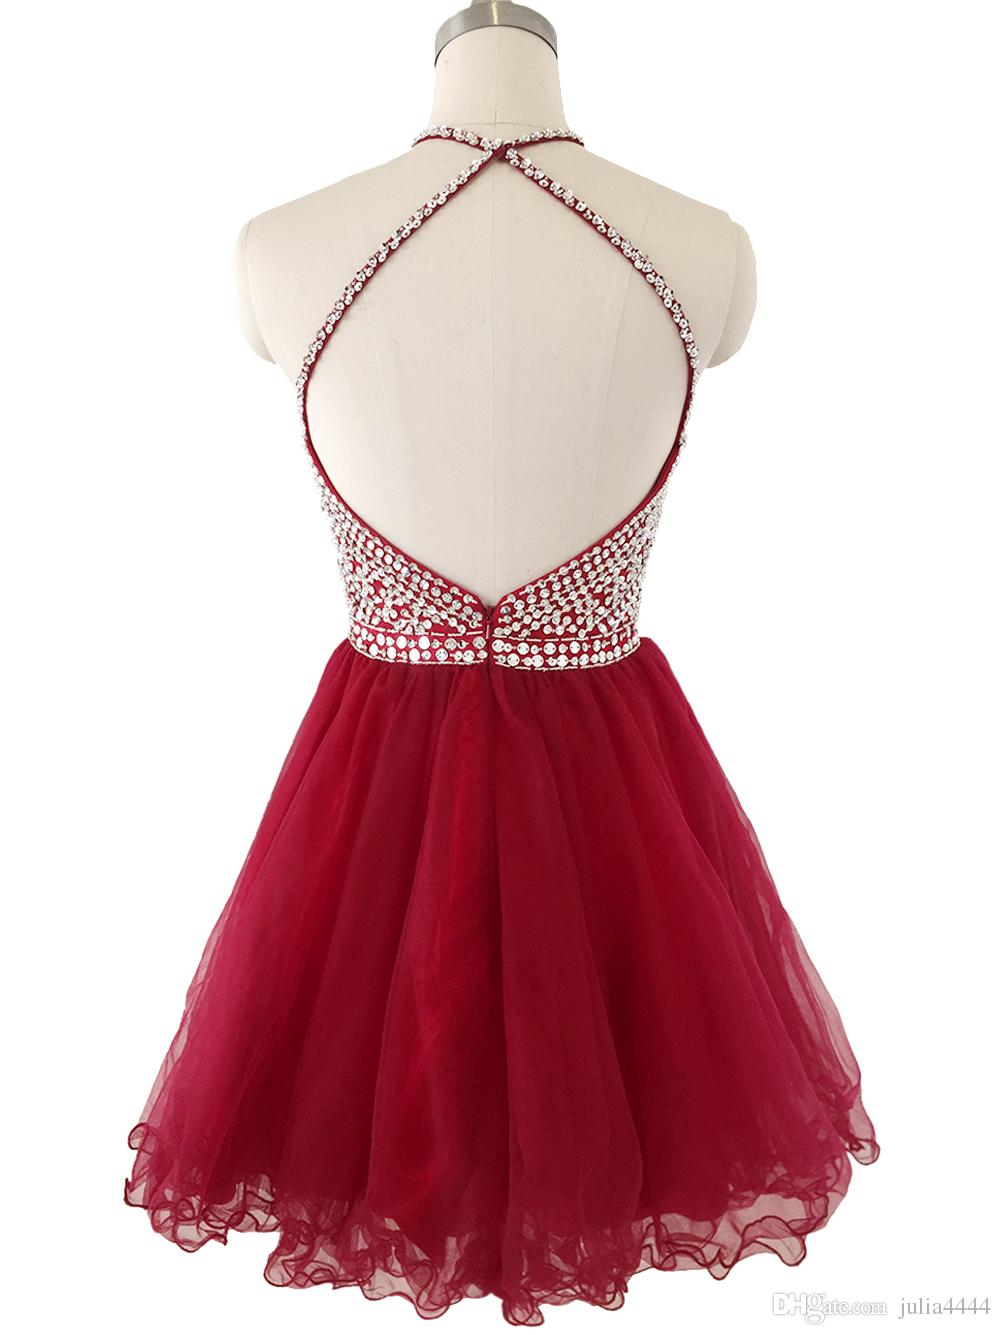 2019 Burgundy Short Homecoming Dresses Halter Sequins Beads Crystals Puffy Skirt Cocktail Party Gown Junior Prom Dresses Backless In Stock